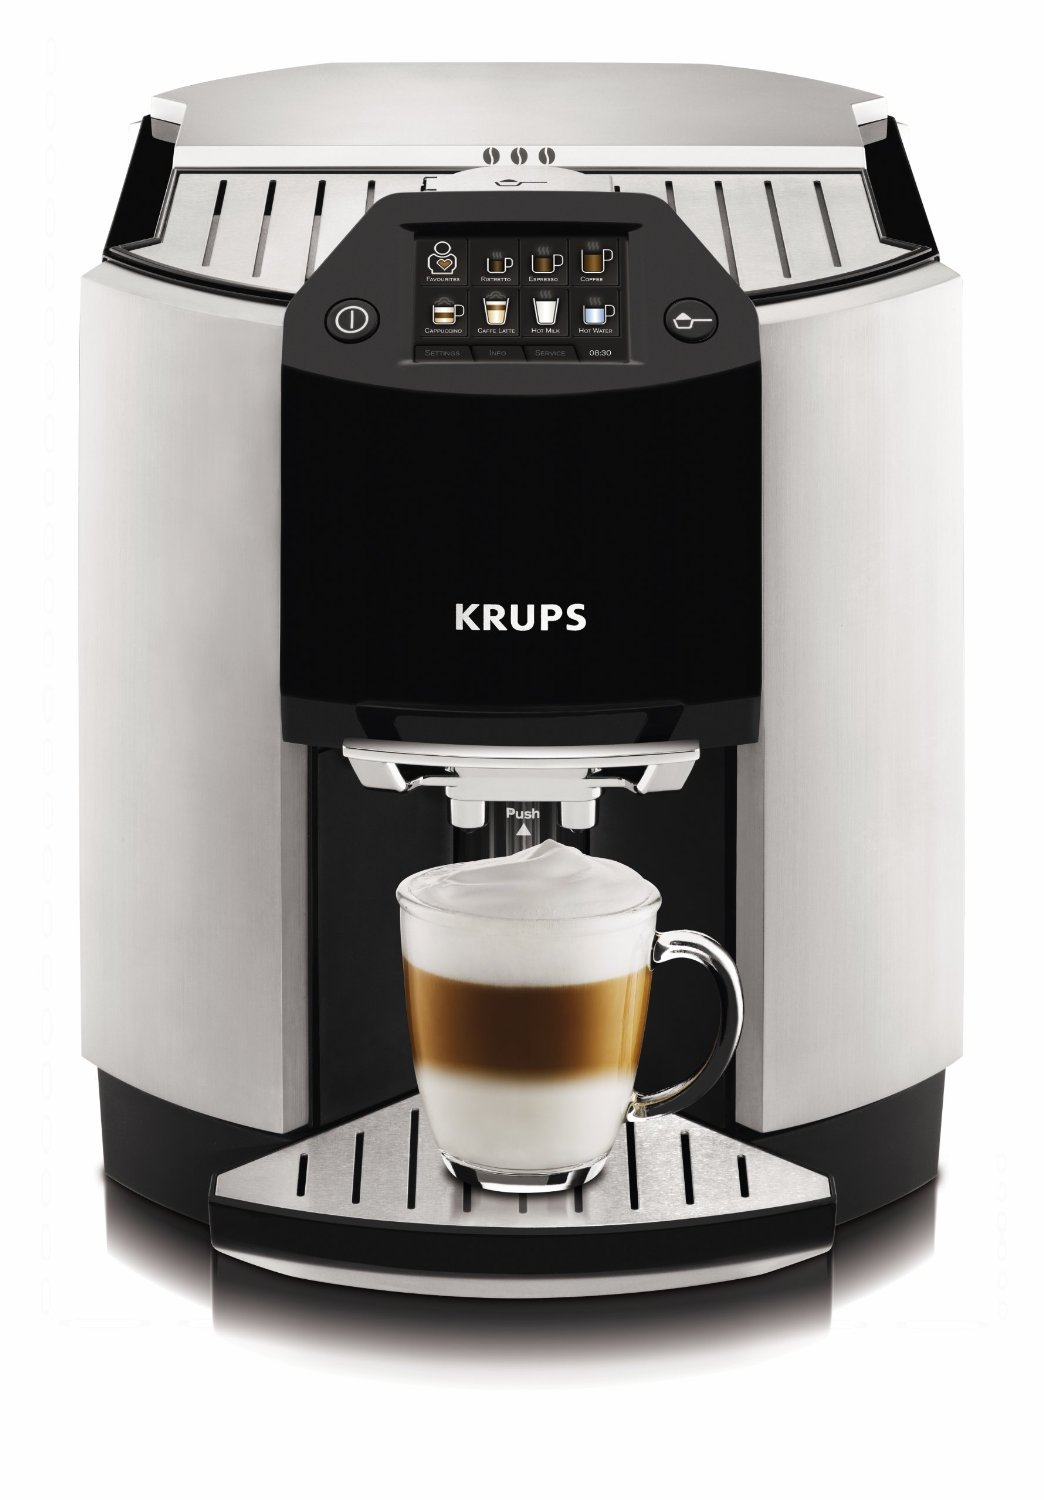 Krups cappuccino machine instructions